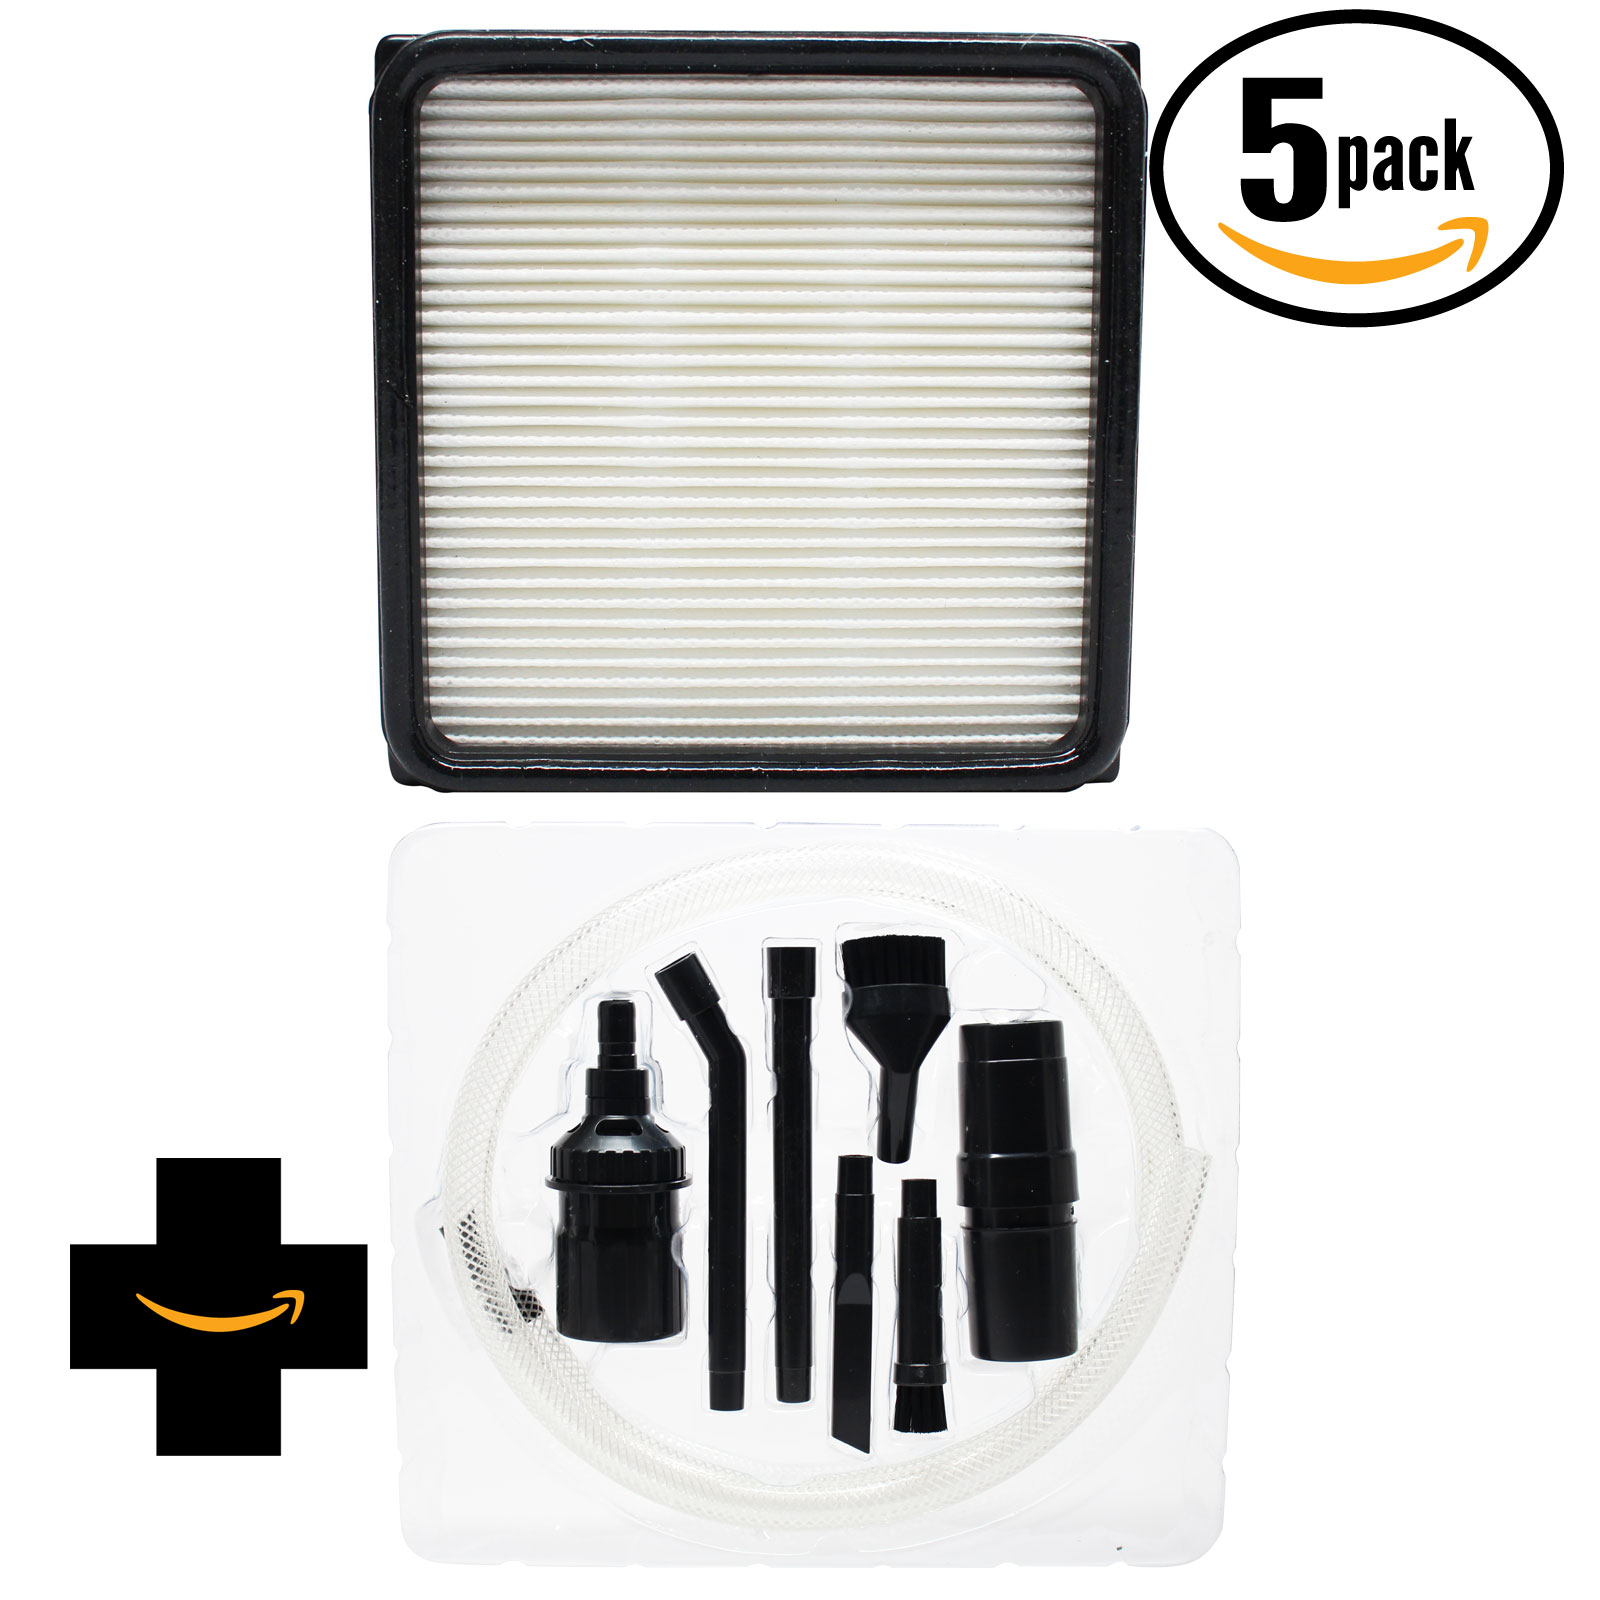 5-Pack Replacement Dirt Devil Featherlite Bagless Upright UD70100 Vacuum HEPA Filter and Foam Filter Insert with 7-Piece Kit - Compatible Dirt Devil 304708001, F59, F66 HEPA and Foam Filter Insert